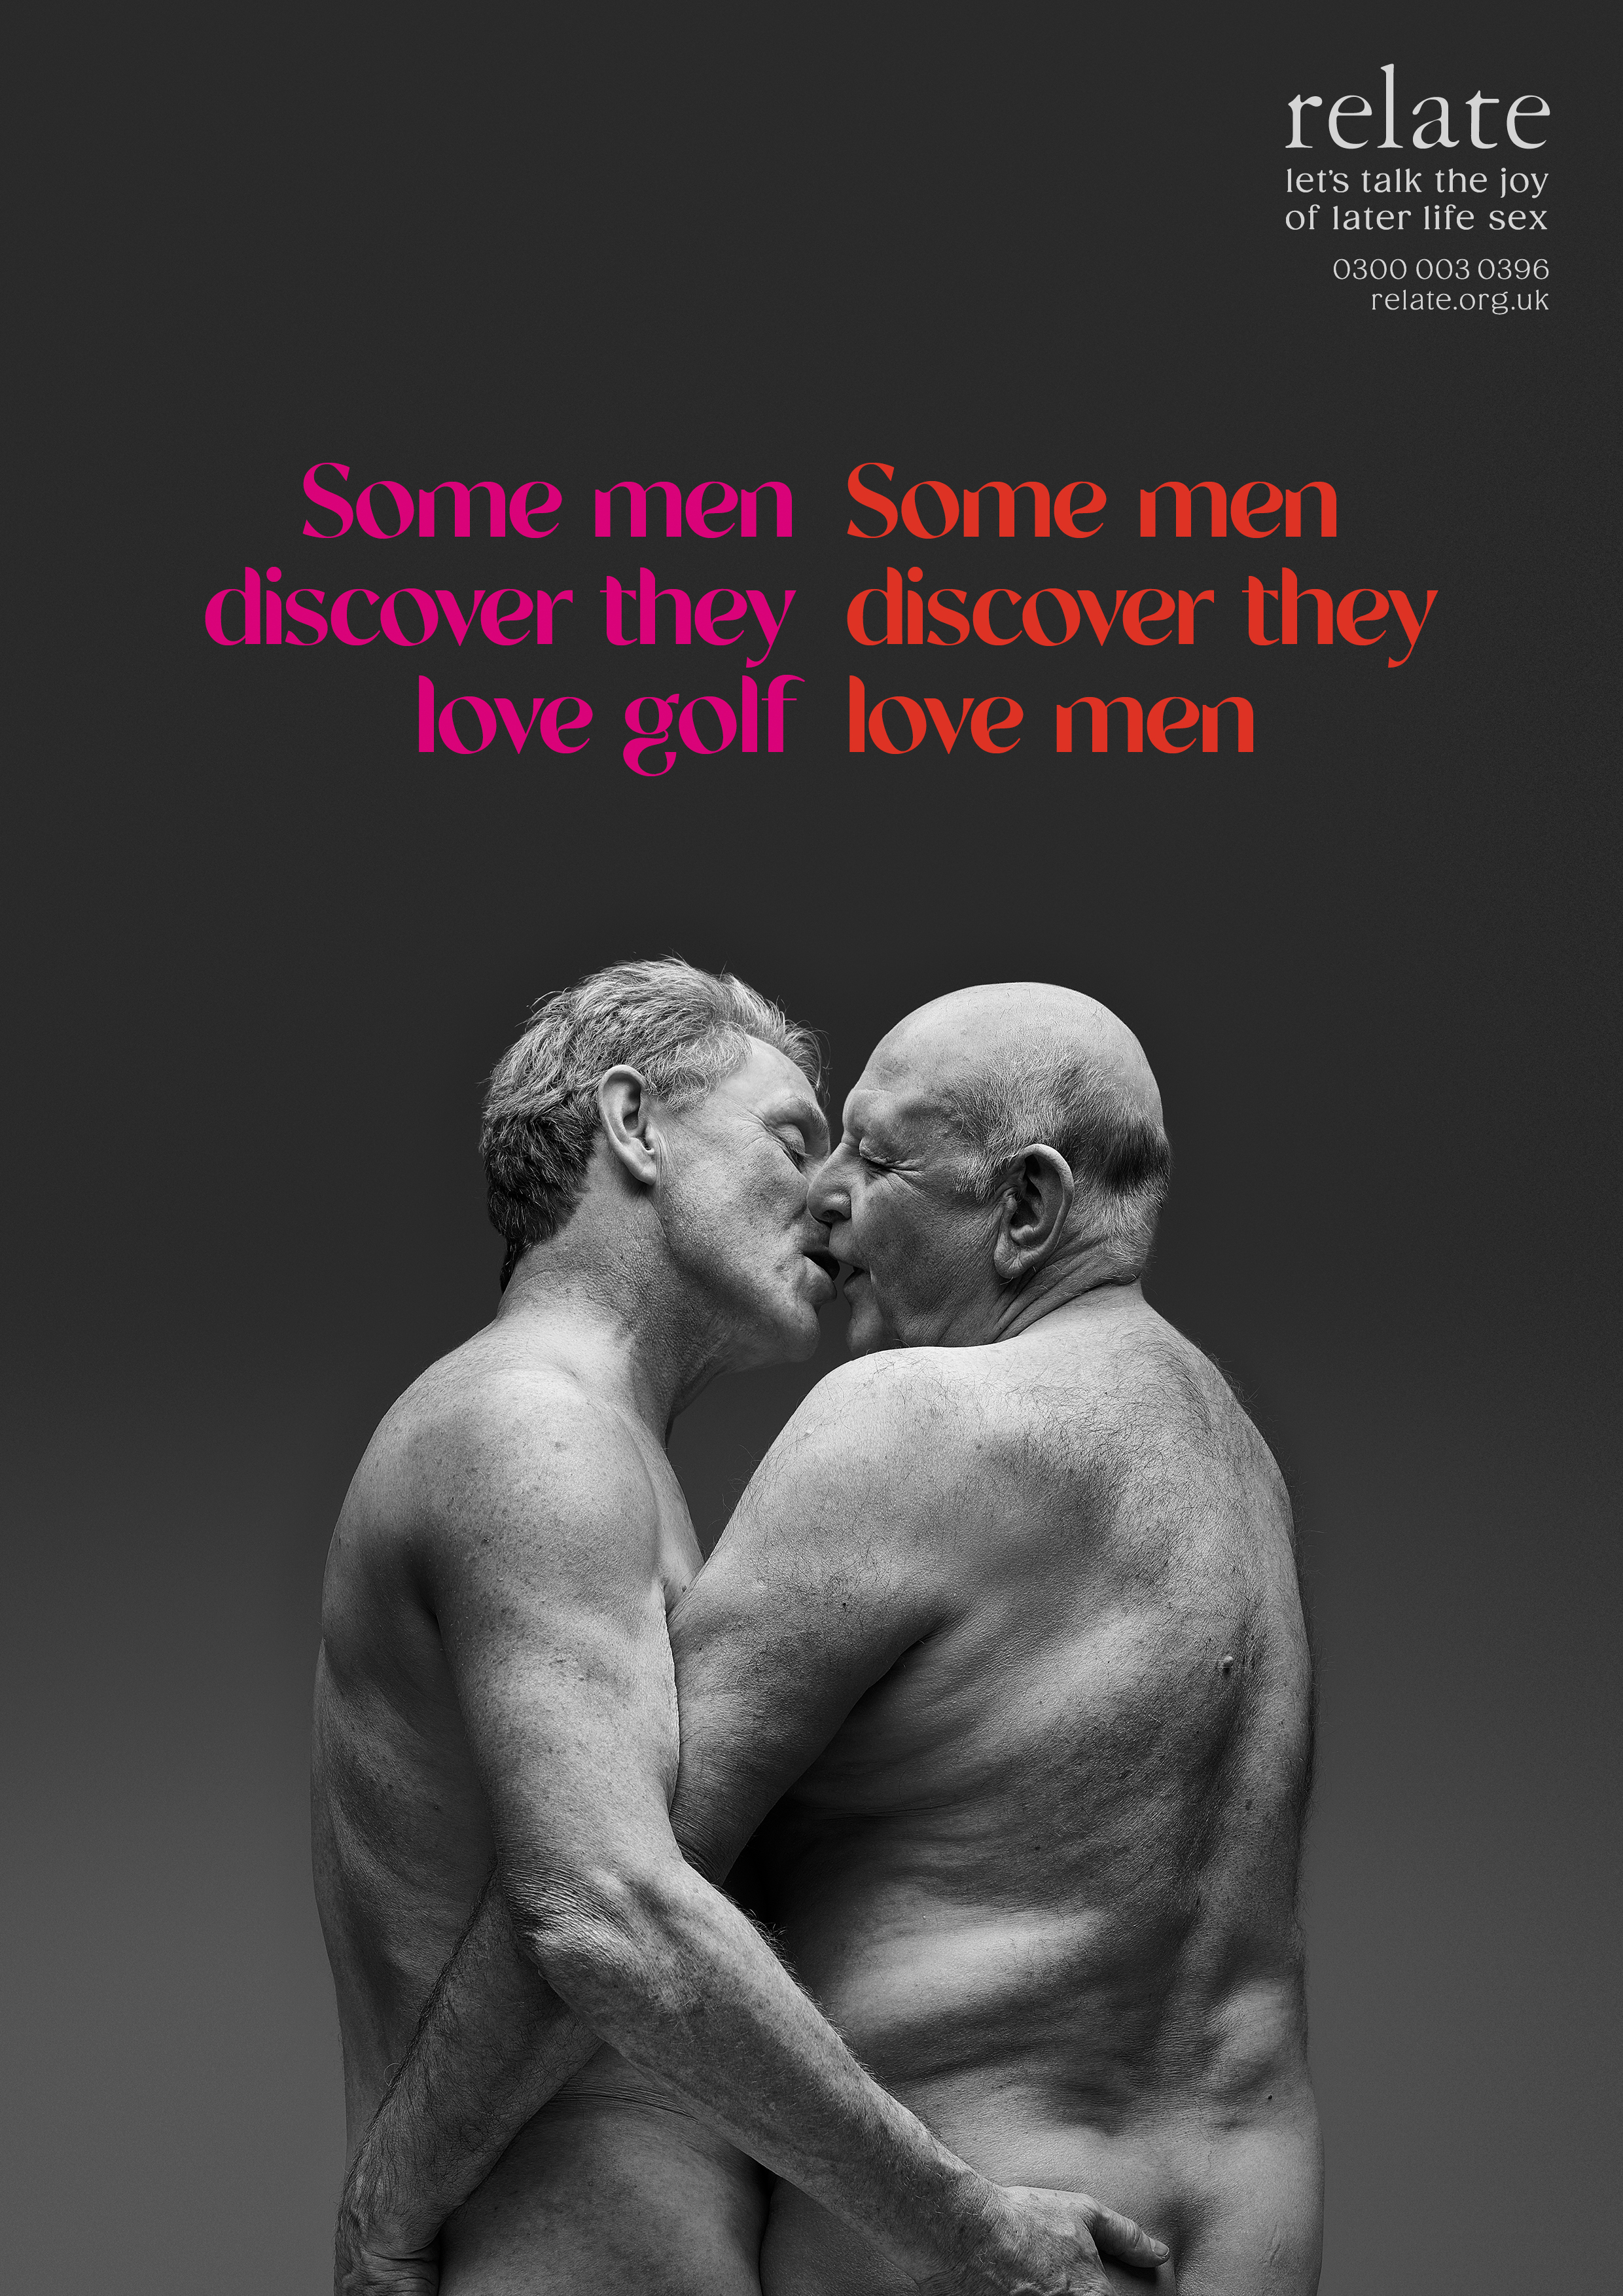 older men kissing and embracing with caption 'Some men discover they love golf. Some men discover they love men.'